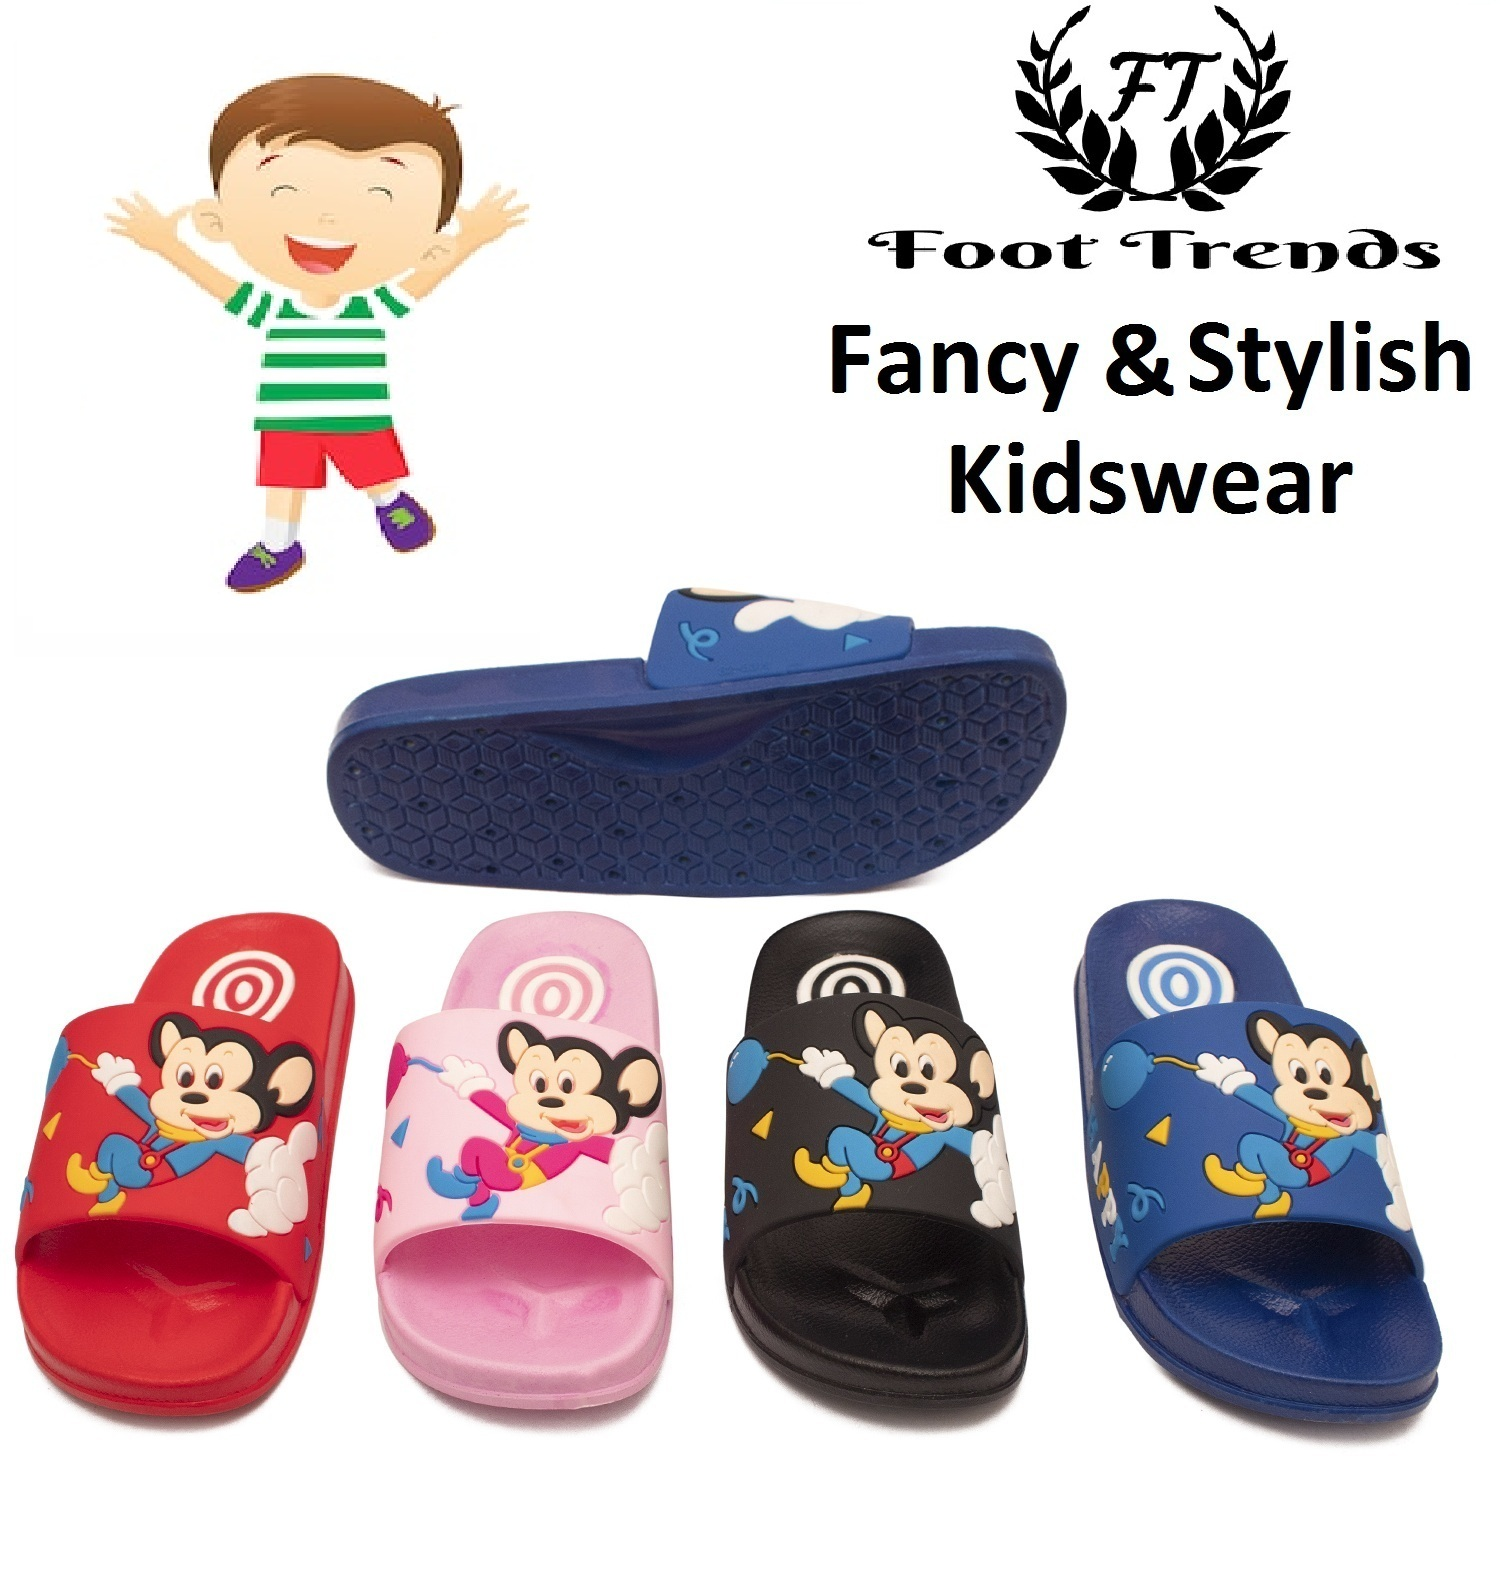 Foot Trends Micky-Mouse Fashionable Slipper For Kids FT-Micky-Mouse26-30 (Multicolor, 26-30, 10 PAIR)